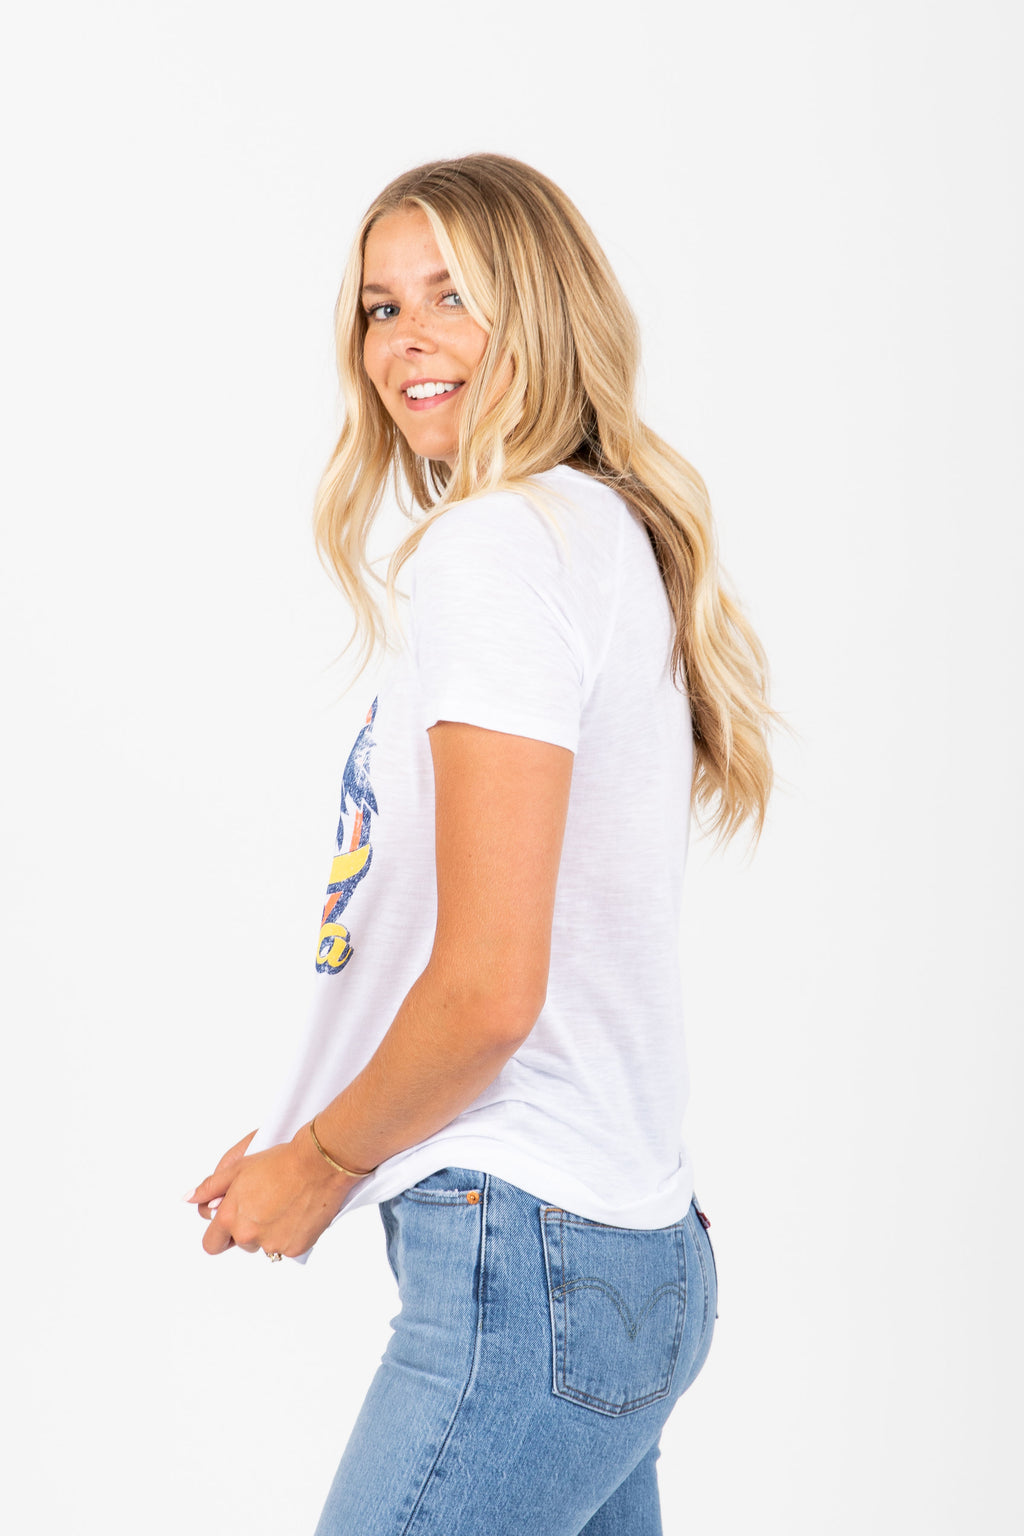 The Firefly California Graphic Tee in White